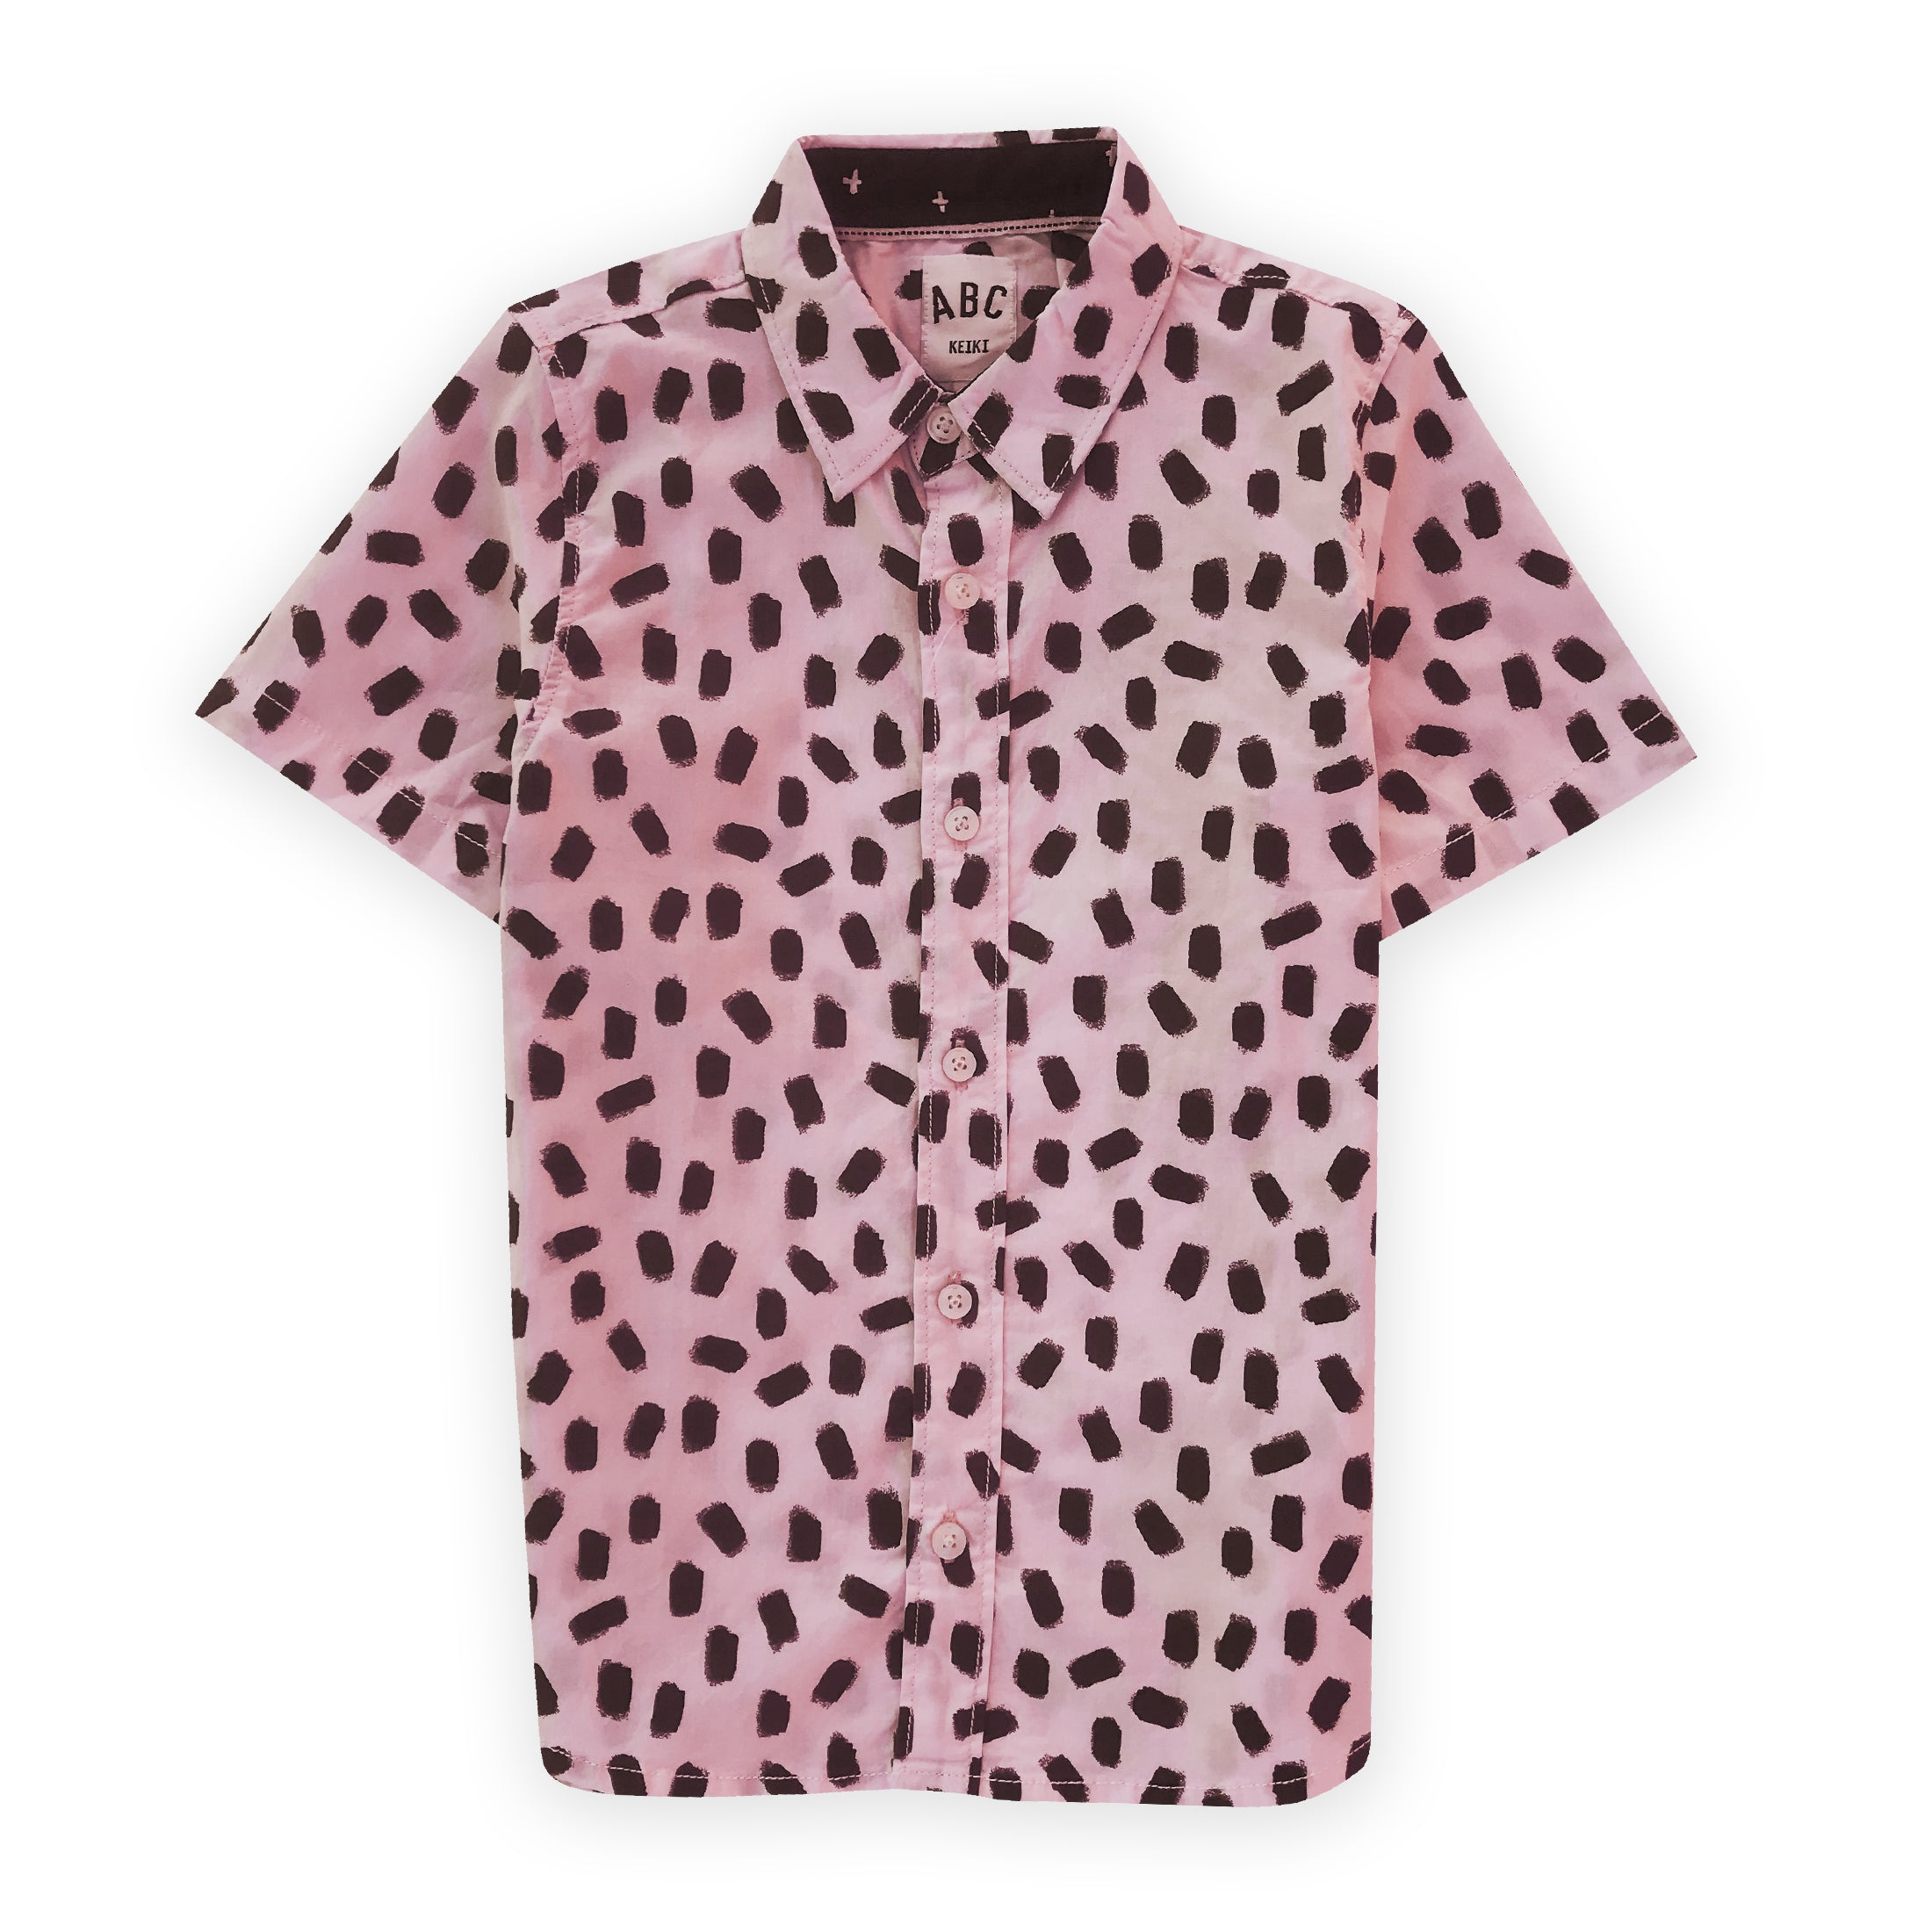 Aloha Beach Club - Kids Pink Polkadot Aloha Shirt - Aloha Beach Club